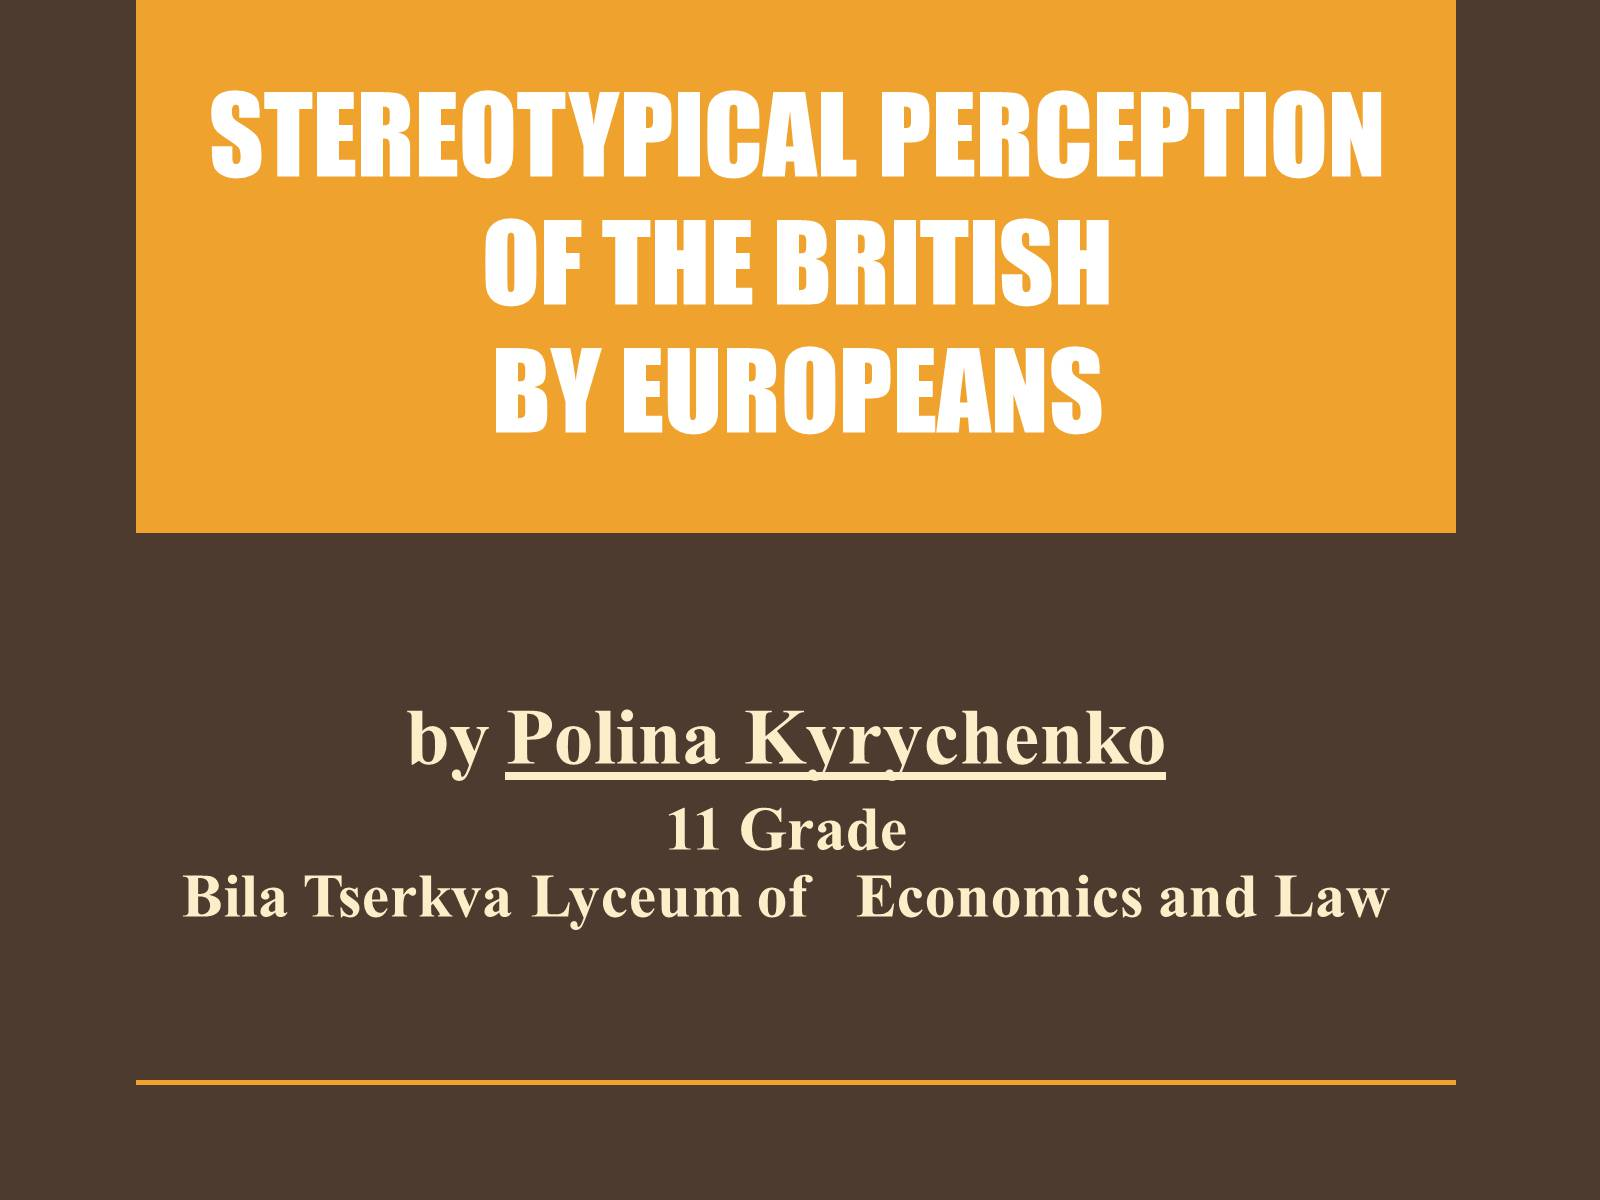 Презентація на тему «Stereotypical perception of the British by Europeans»